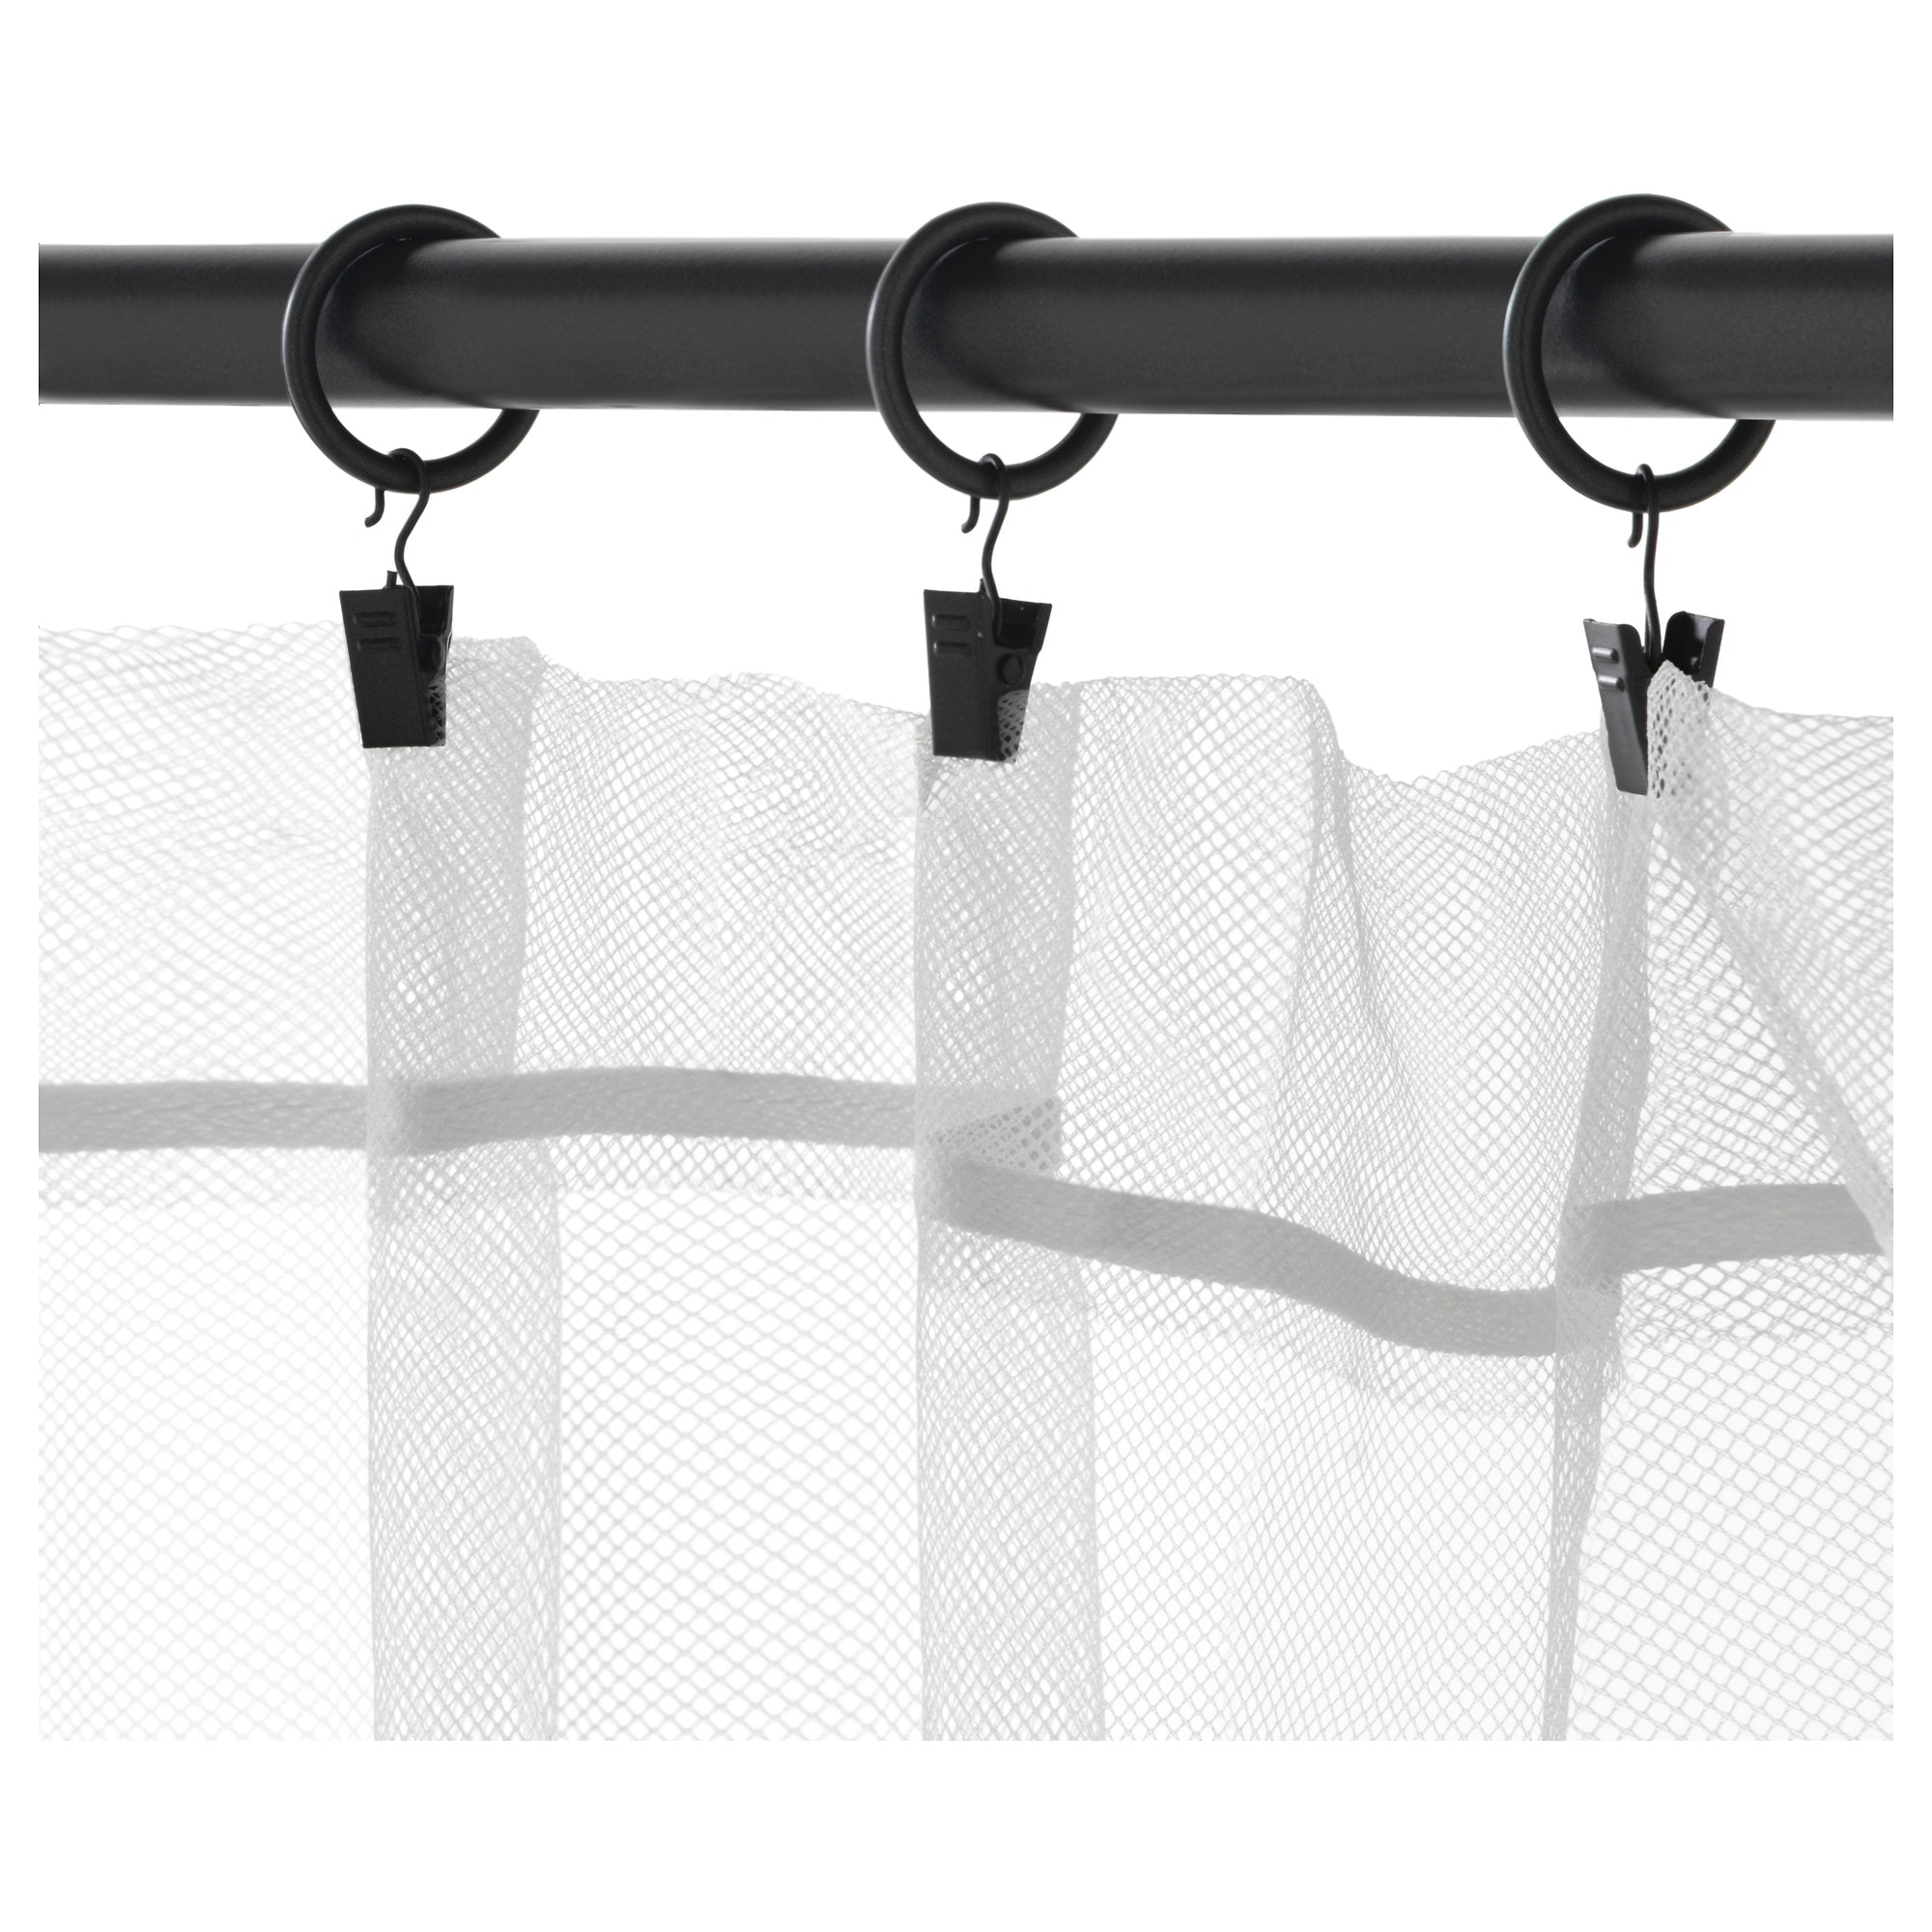 White curtain rings with clips - White Curtain Rings With Clips 4